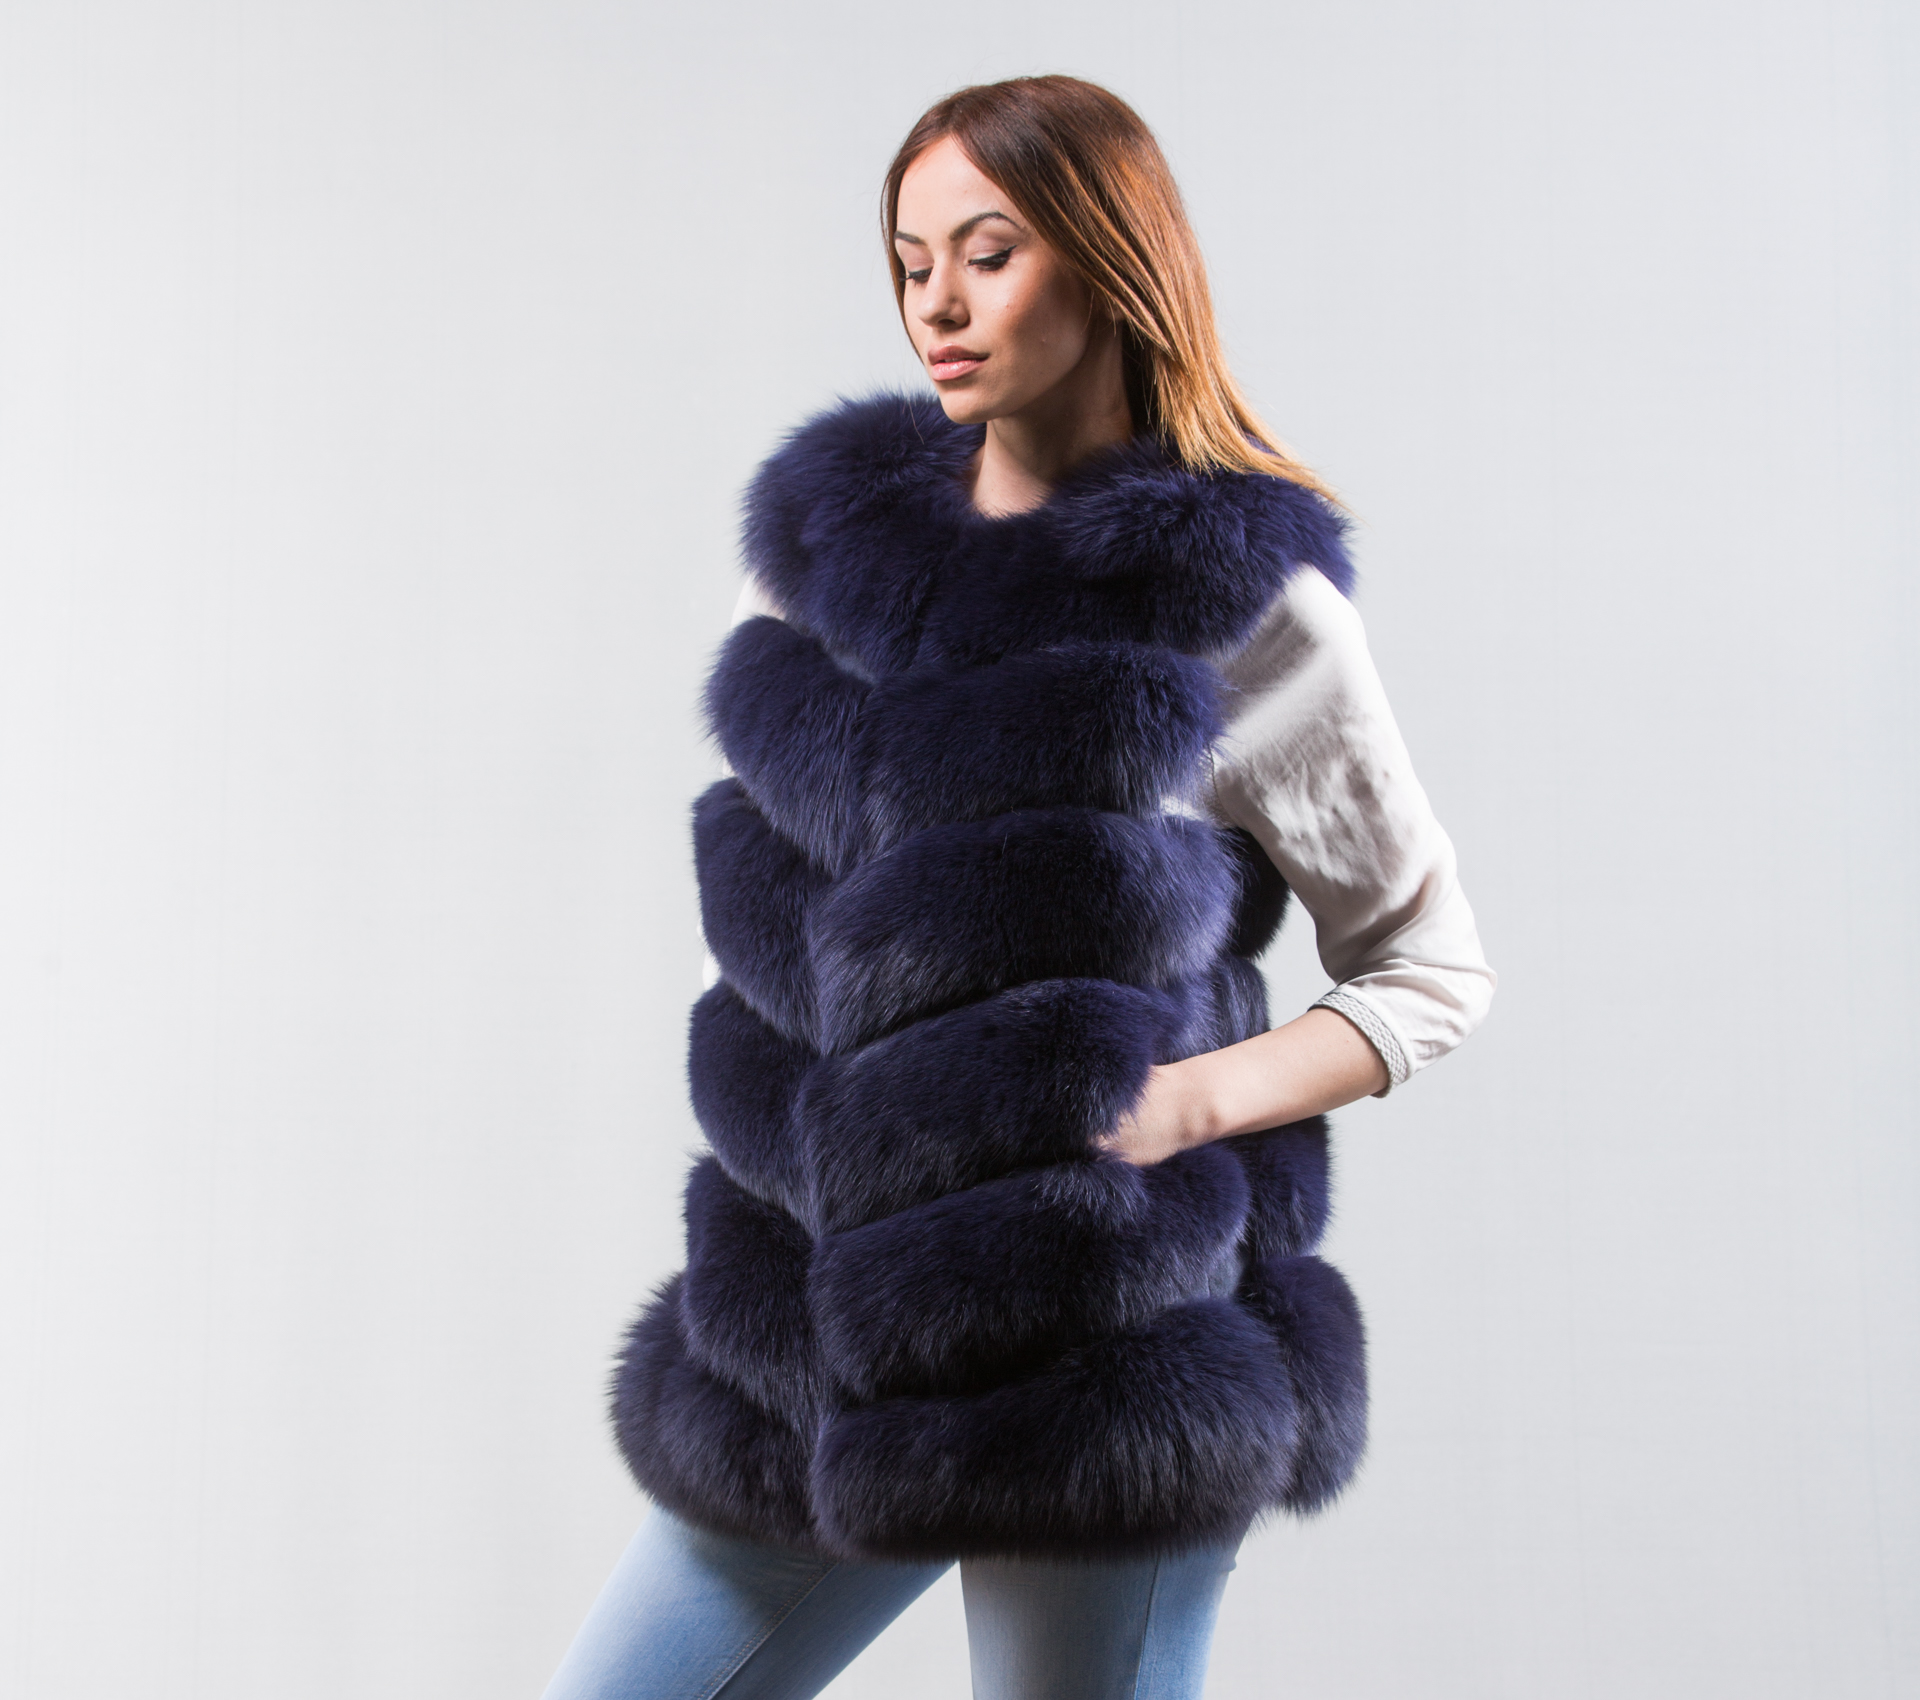 Funky fun blue faux fur cropped vest. Wantdo Women's Quilted Padding Puffer Vest With Removable Hooded. by Wantdo. $ $ 39 97 Prime. FREE Shipping on eligible orders. Some sizes/colors are Prime eligible. out of 5 stars